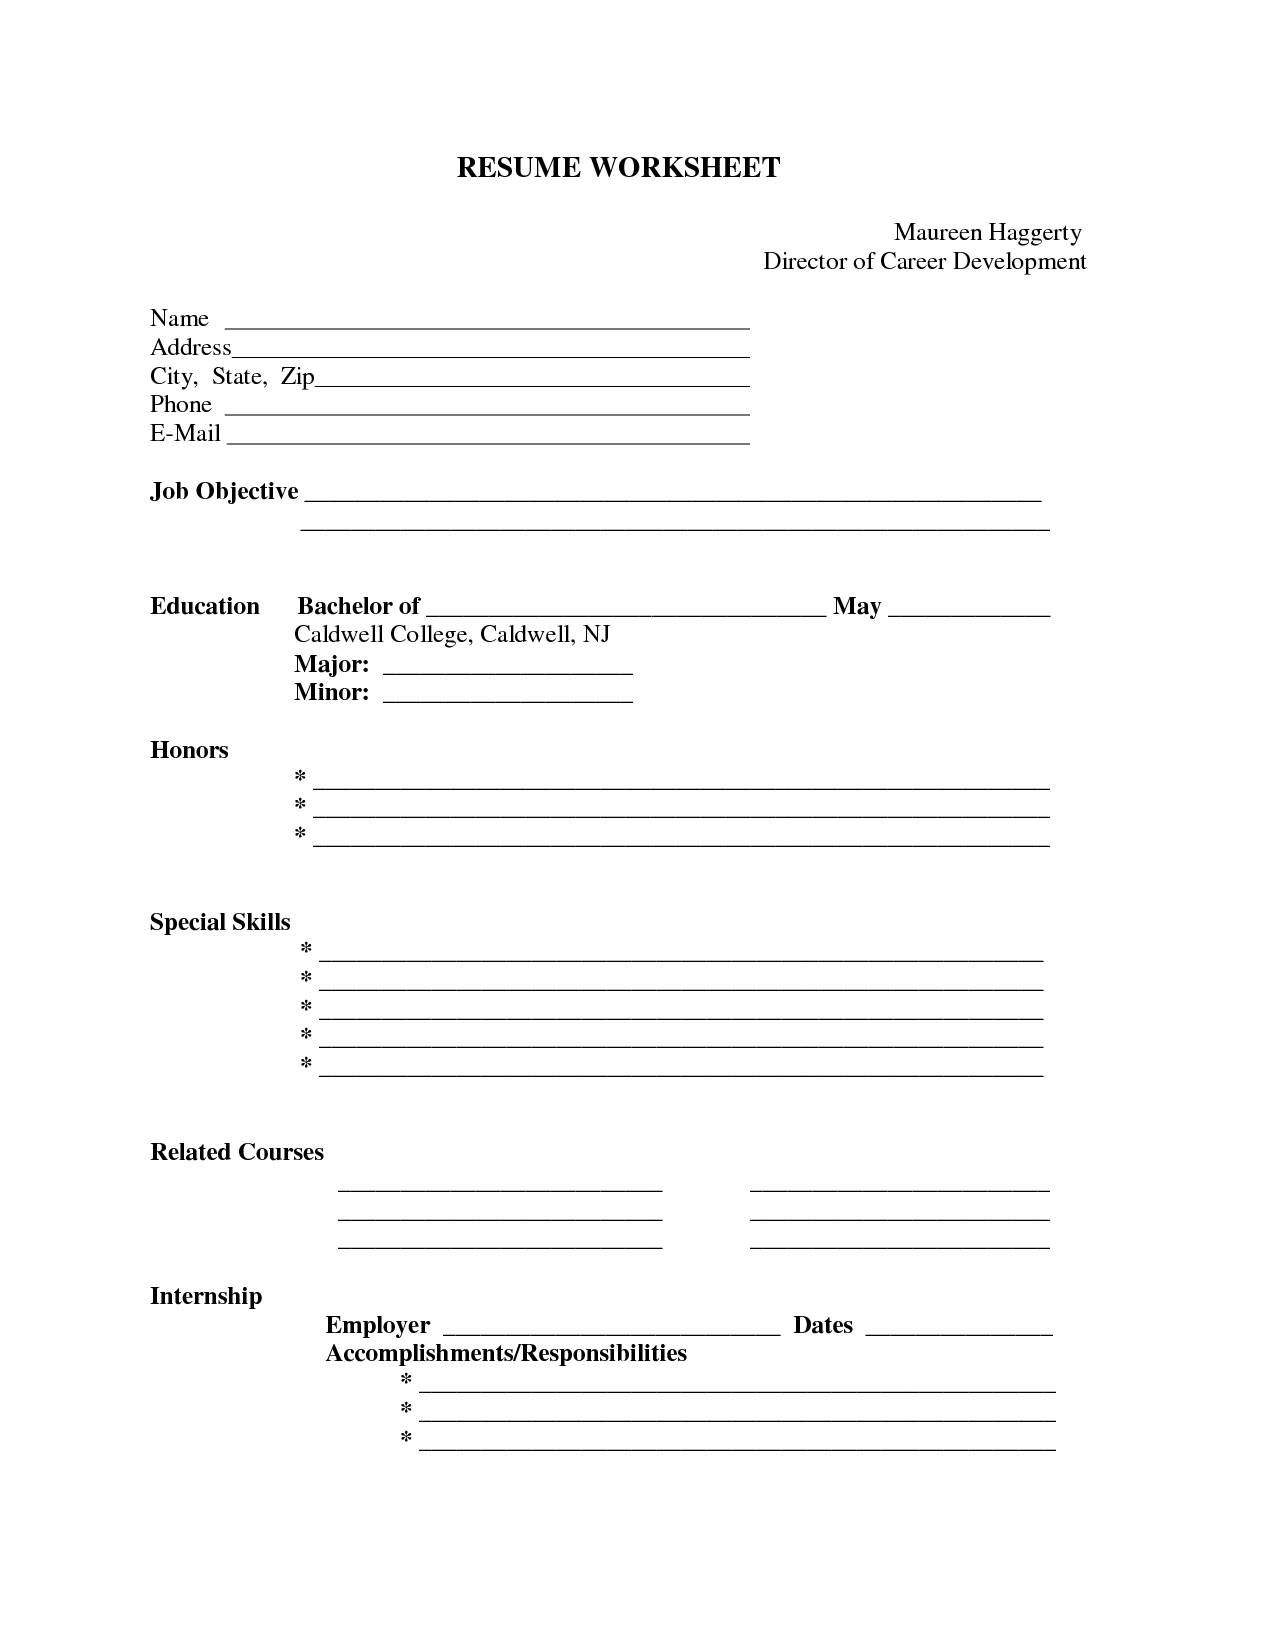 Free Printable Blank Resume Forms  HttpWwwResumecareerInfo